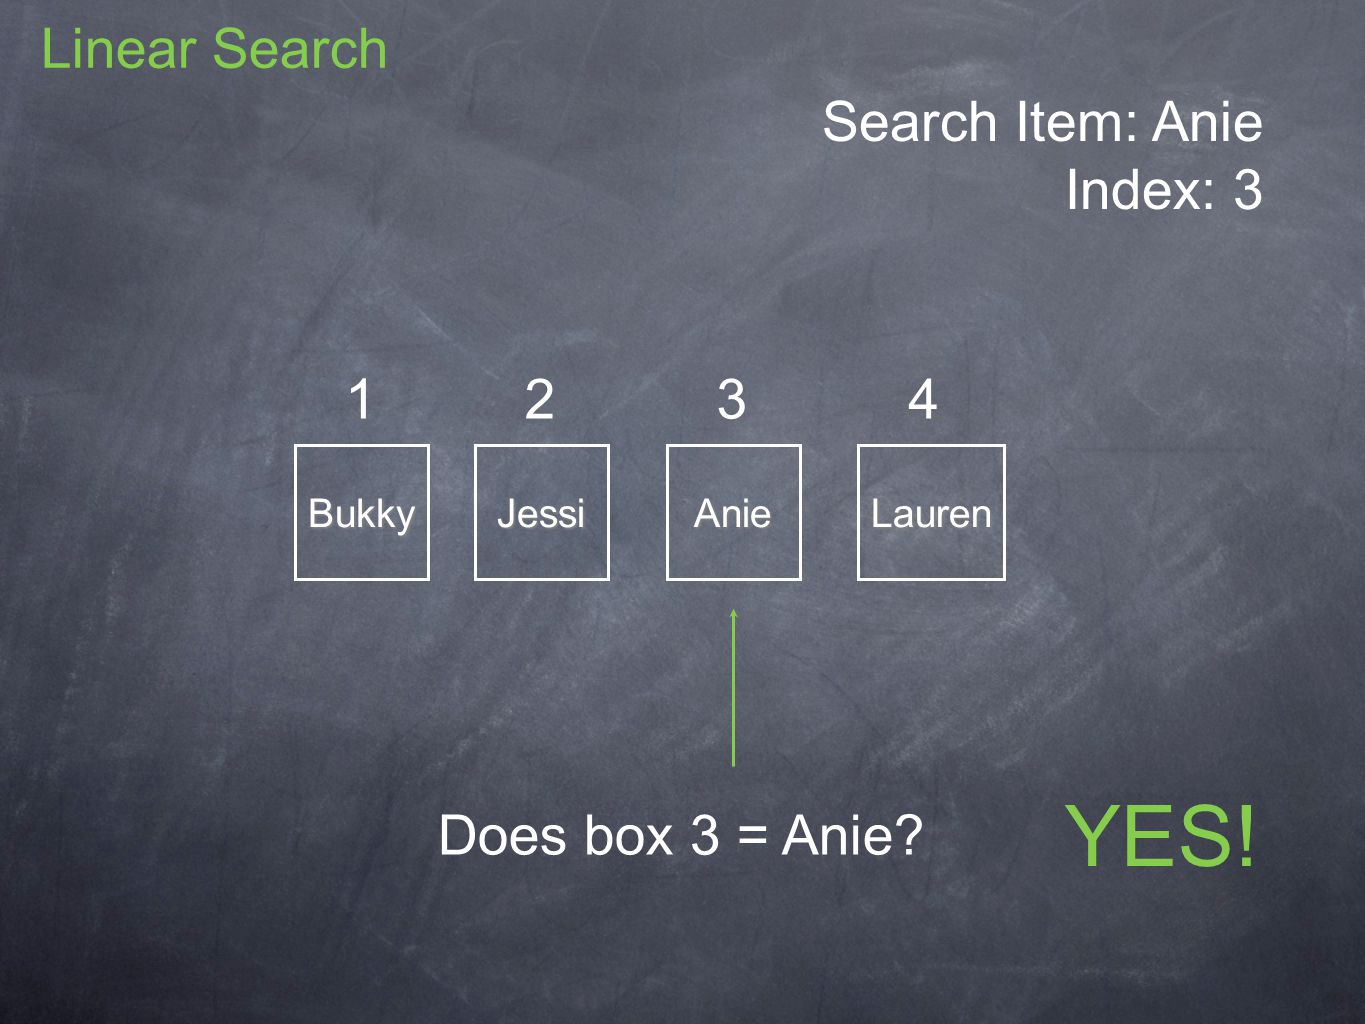 Search Item: Anie Index: 3 BukkyJessiAnieLauren 1234 Does box 3 = Anie YES! Linear Search